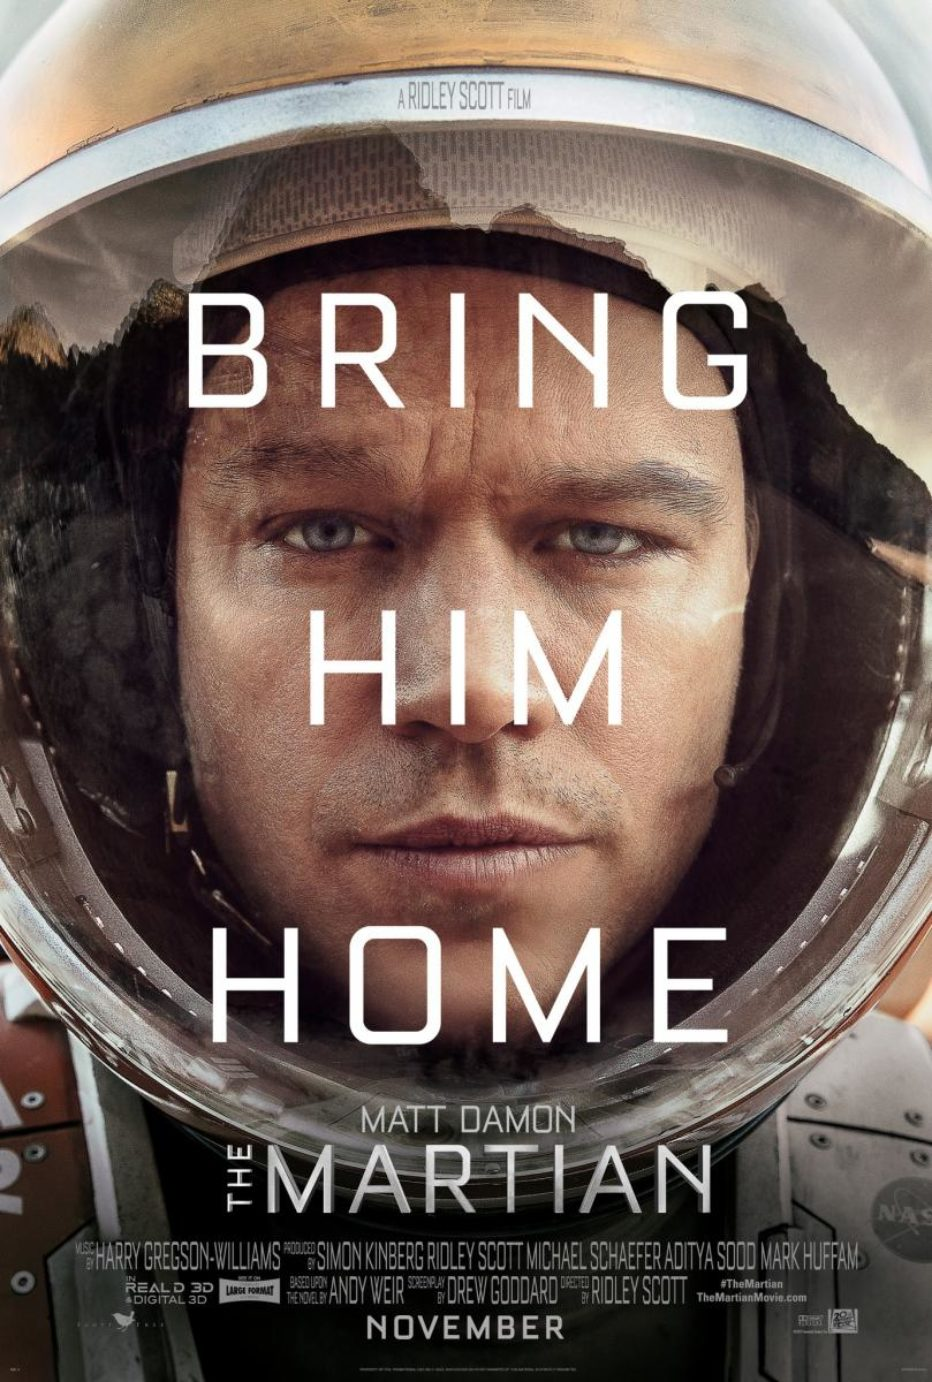 Primer trailer de The Martian de Ridley Scott